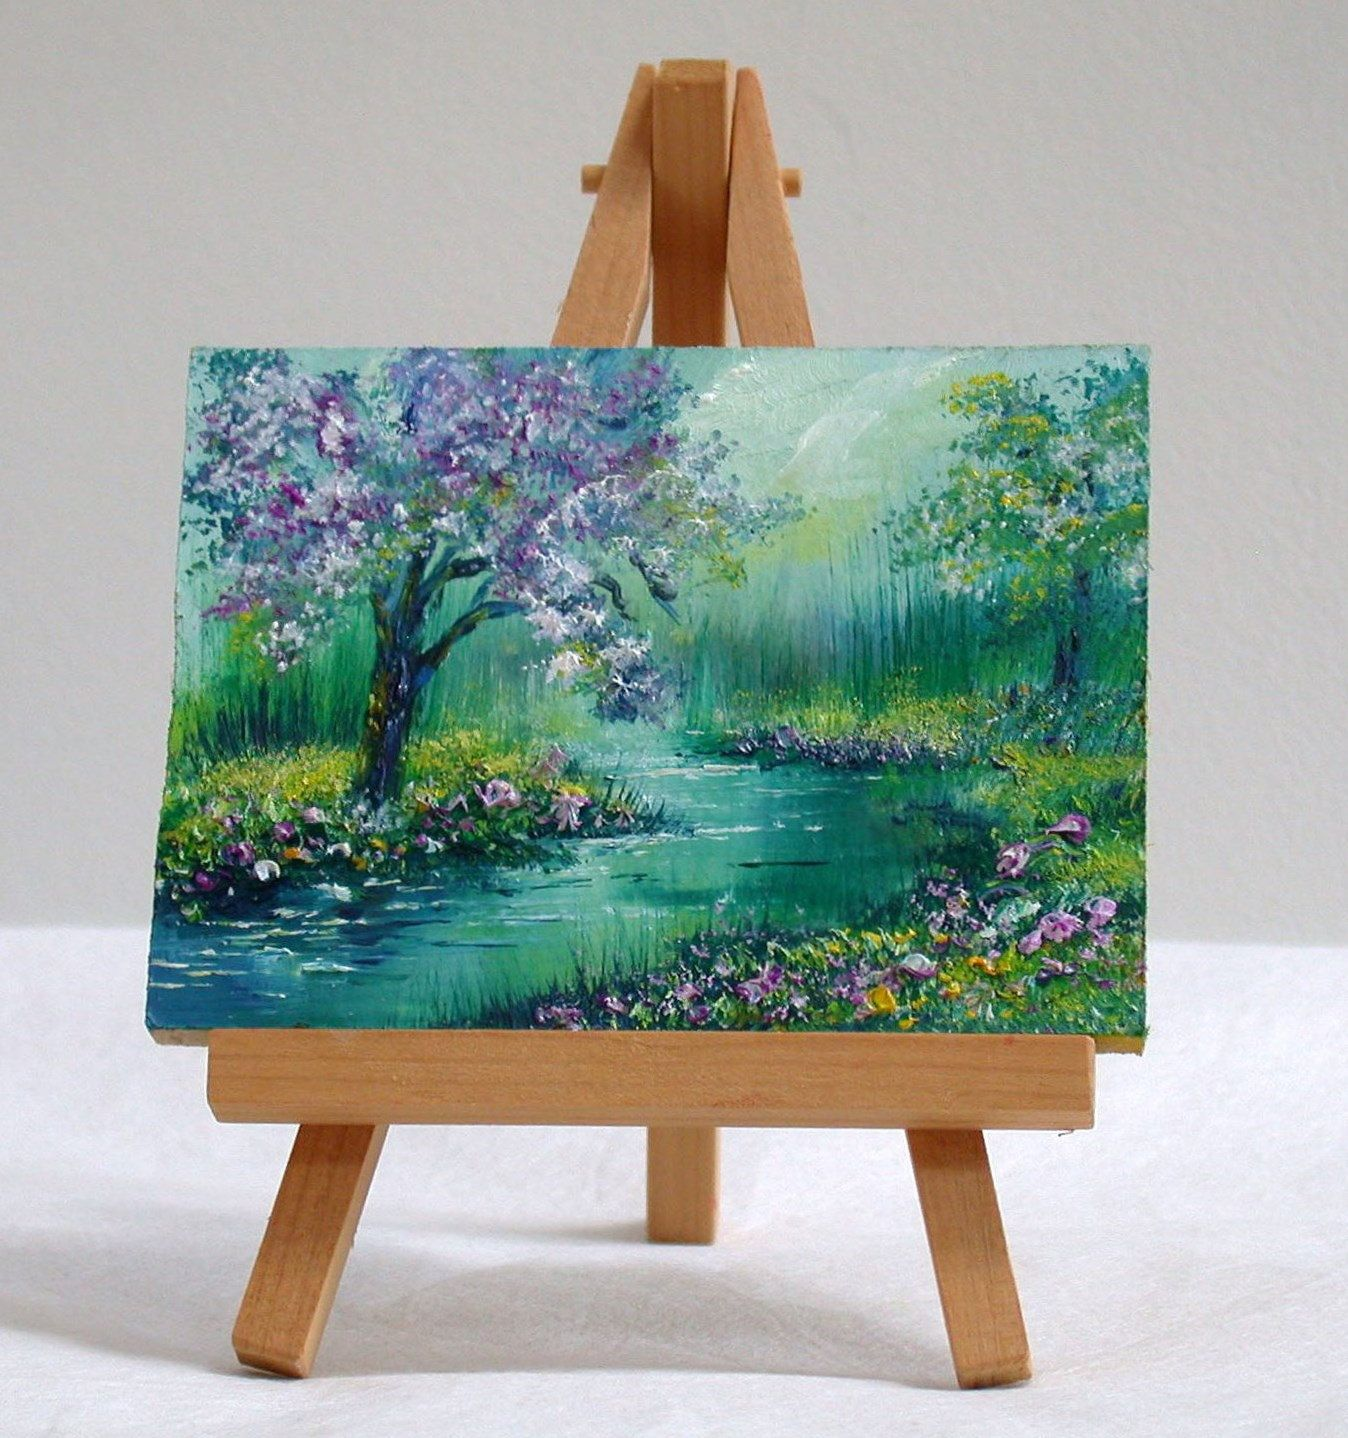 River In Floral Woods 3x4 Original Oil Painting Miniature